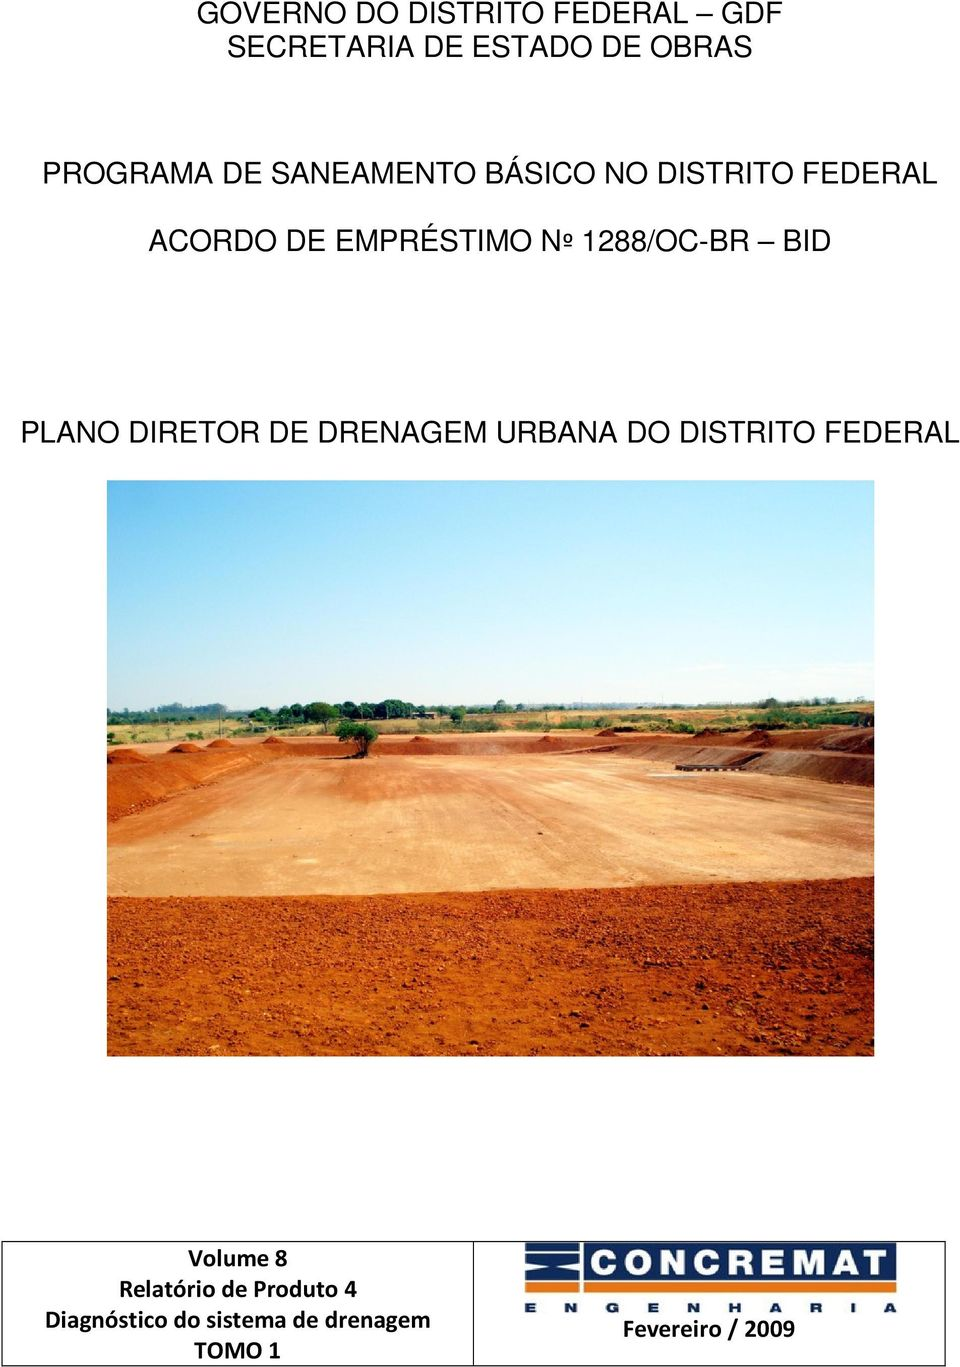 BID PLANO DIRETOR DE DRENAGEM URBANA DO DISTRITO FEDERAL Volume 8